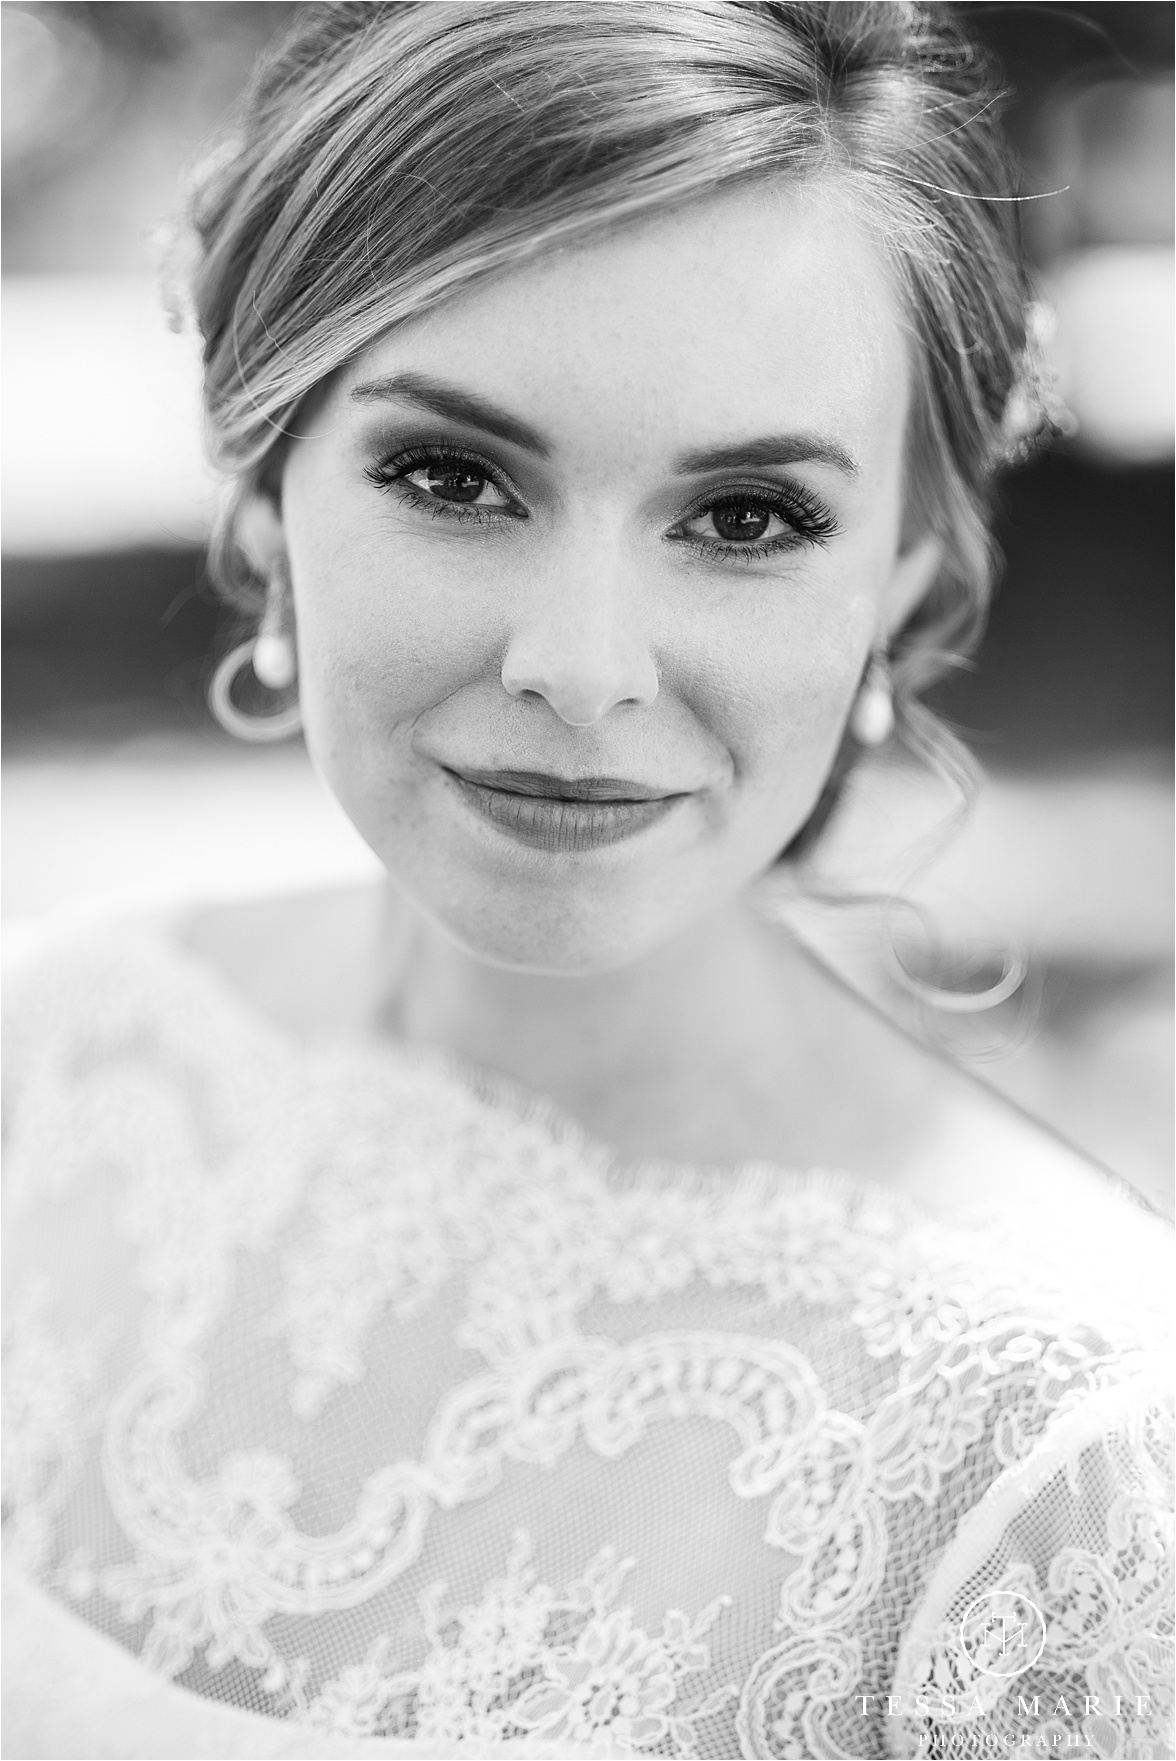 Tessa_marie_weddings_columbus_wedding_photographer_wedding_day_spring_outdoor_wedding_0033.jpg